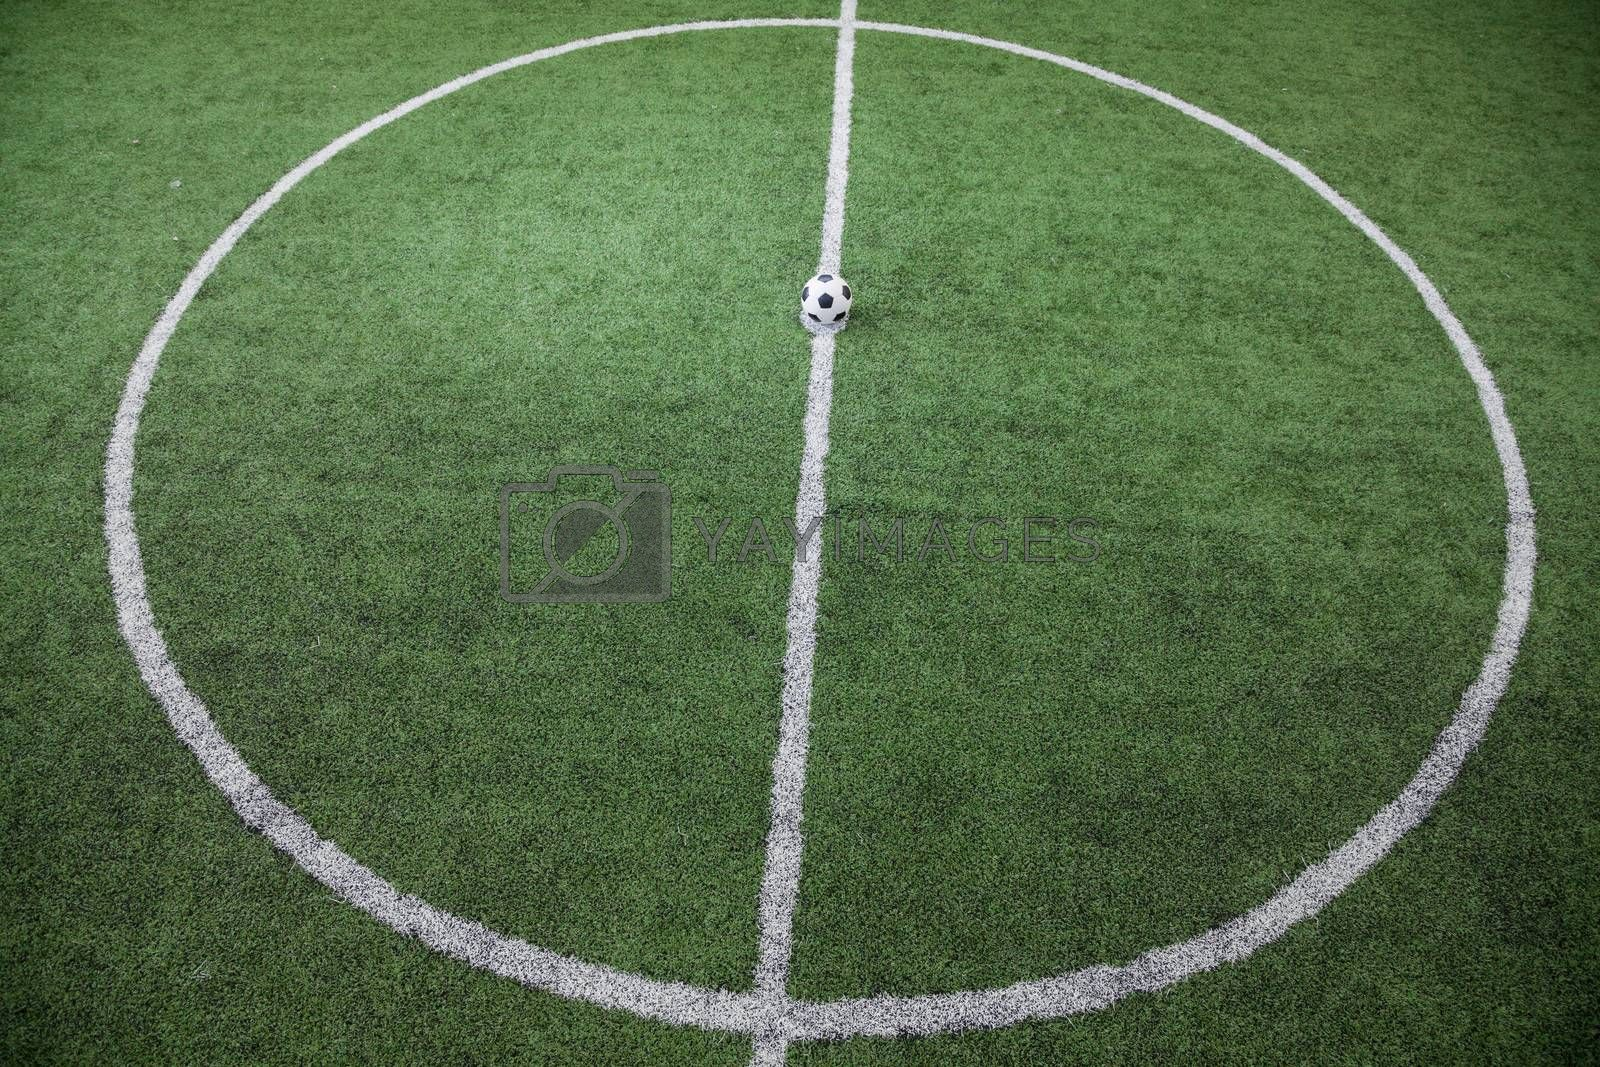 Soccer field with soccer ball on the line, high angle view by XiXinXing